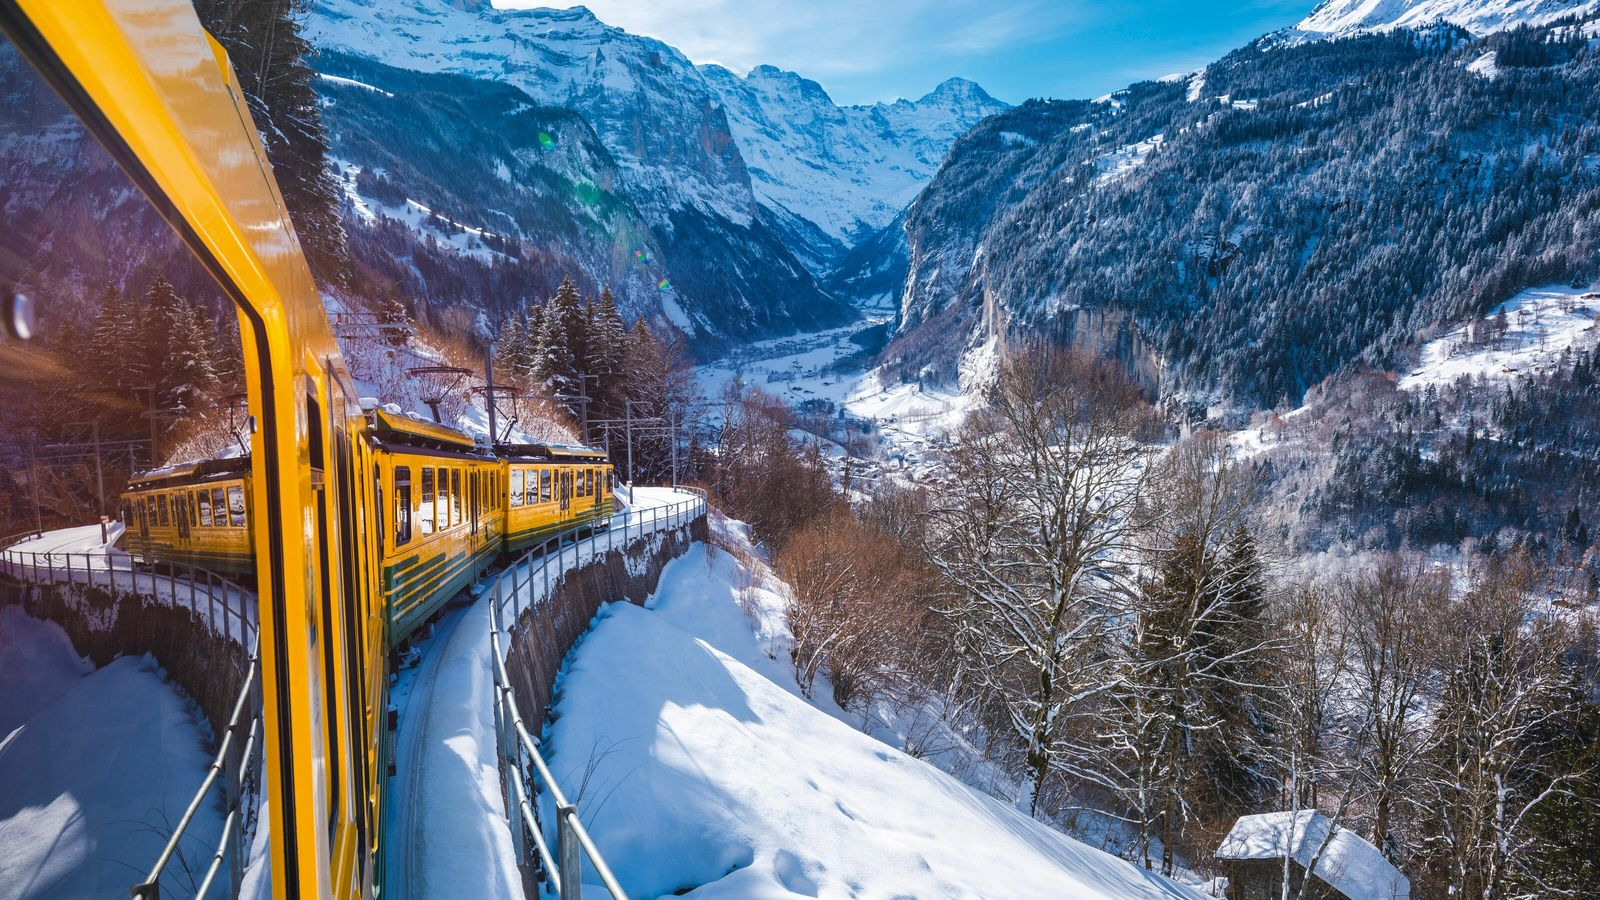 A train ride through the Lauterbrunnen Valley, backed by sheer rock walls and 72 frozen waterfalls.